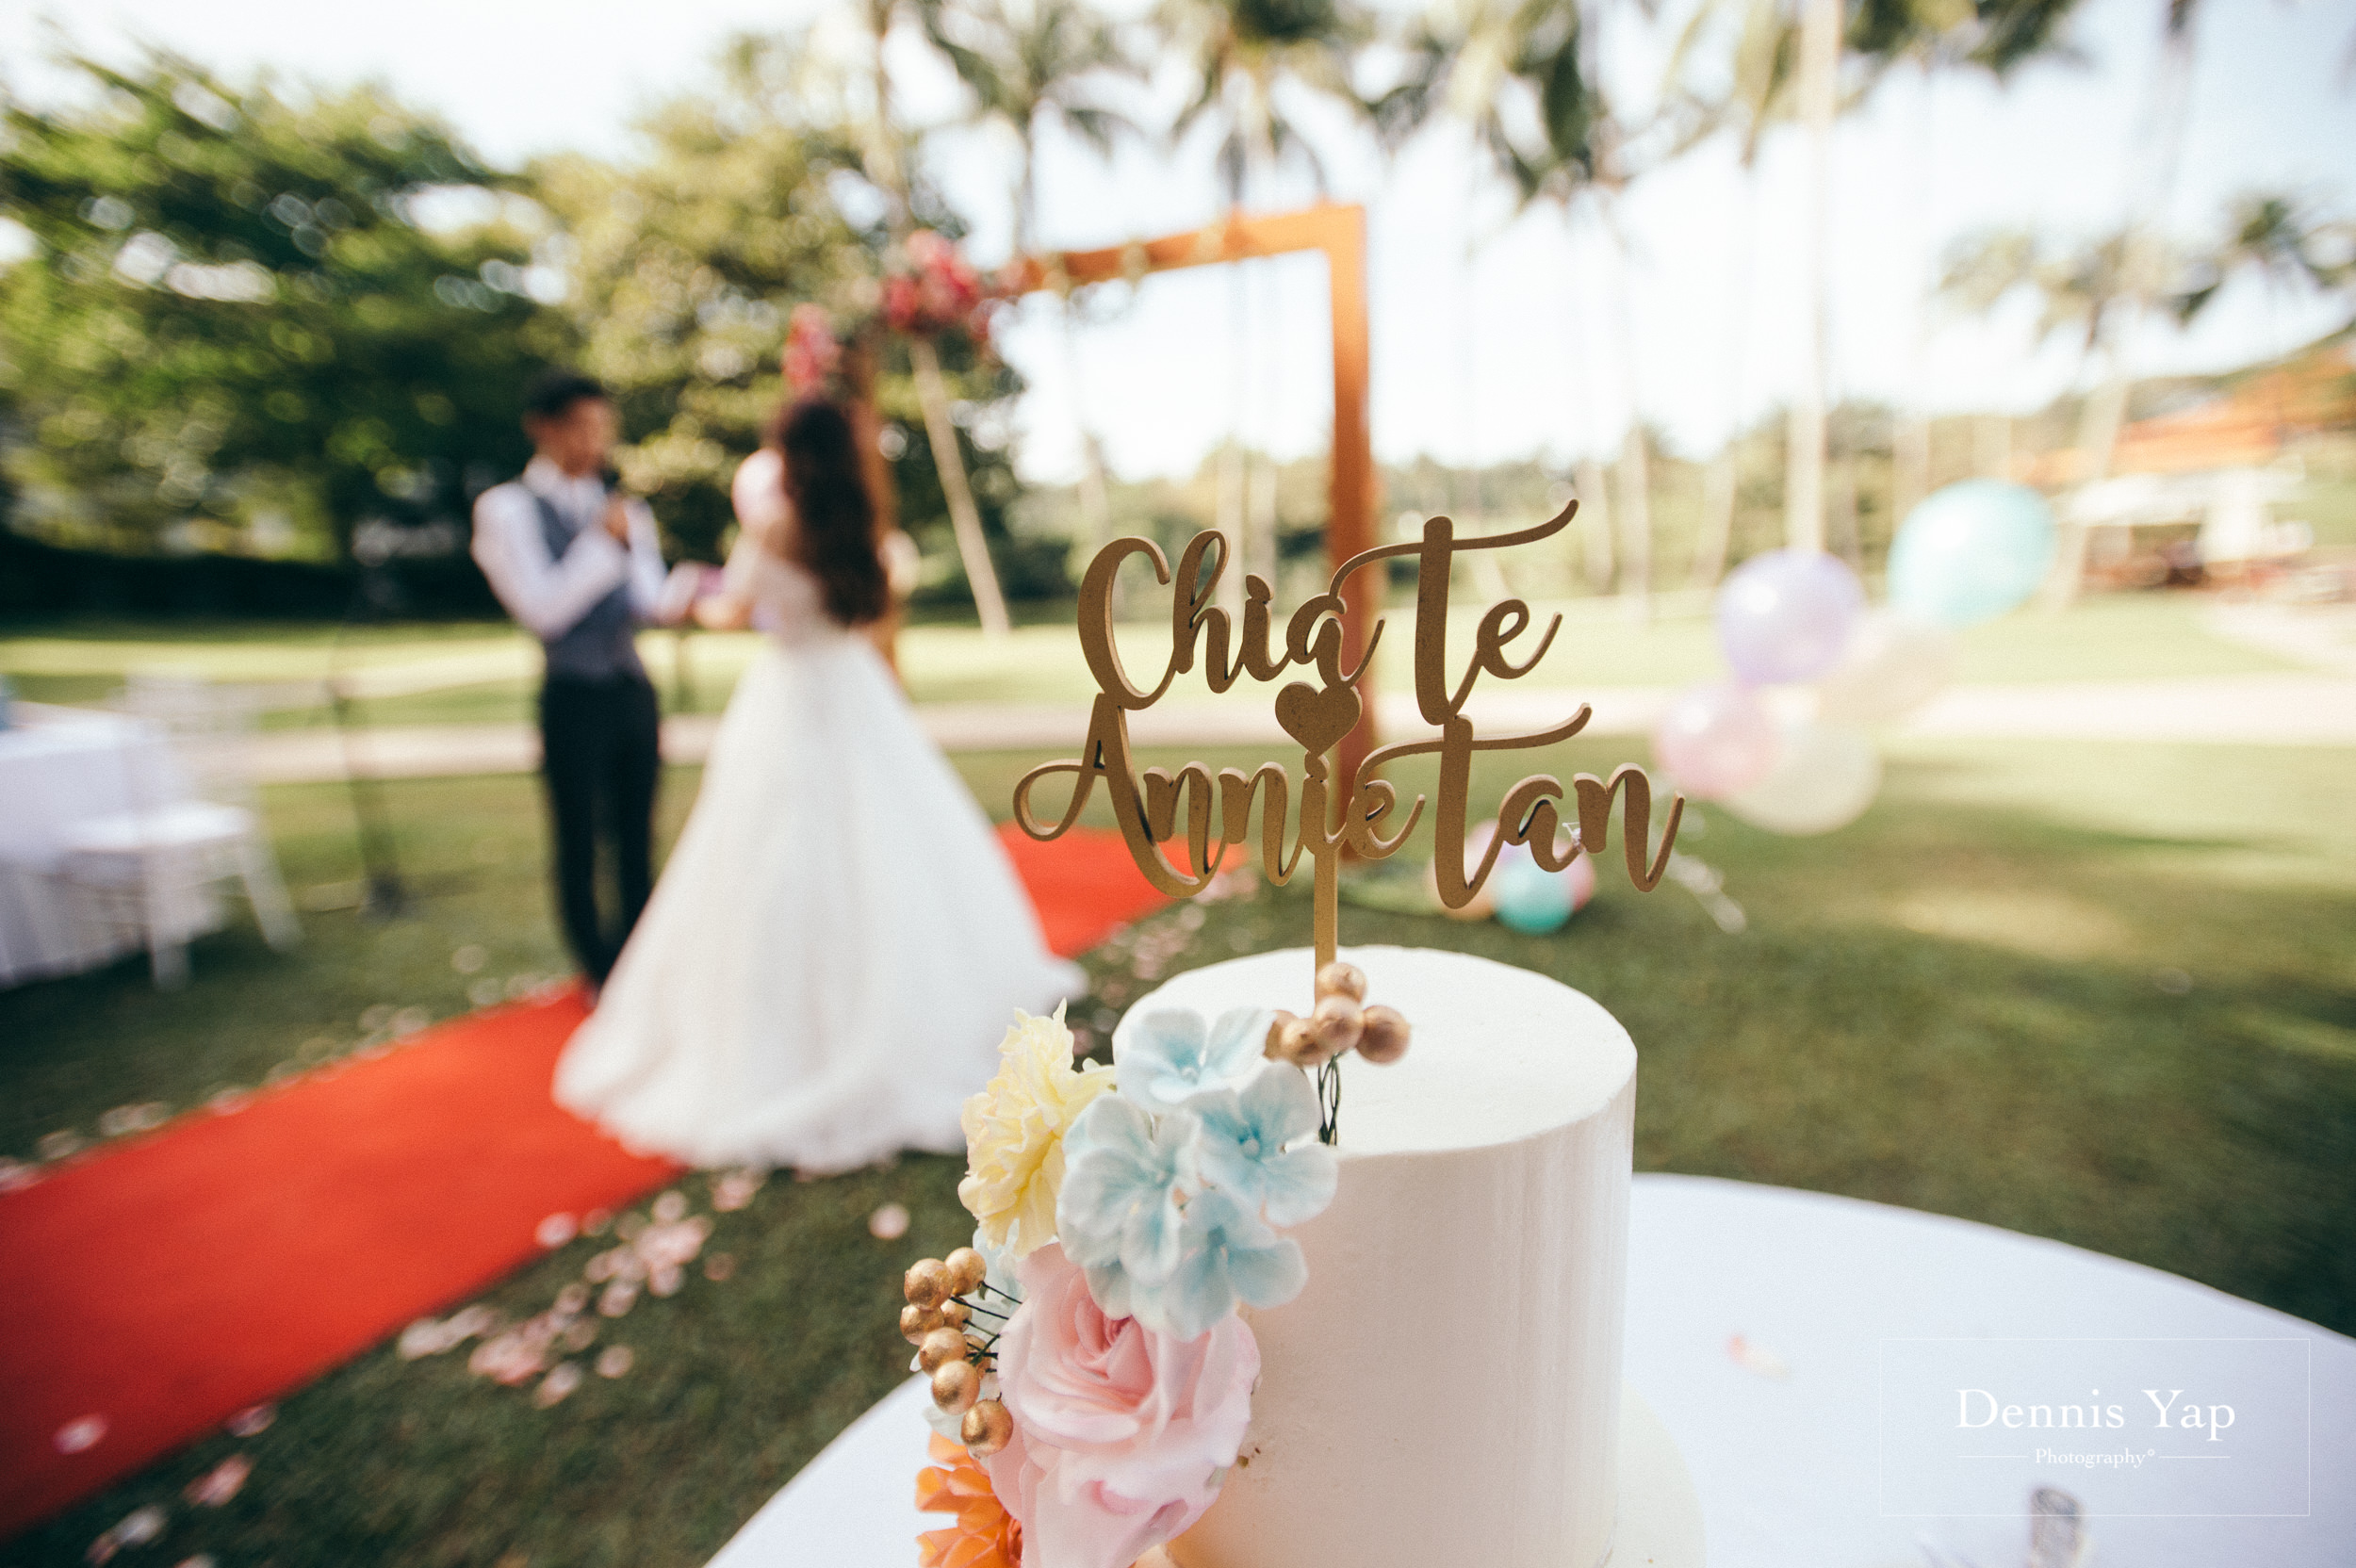 CT Annie garden wedding saujana subang jaya dennis yap photography IT malaysia top photographer-12.jpg